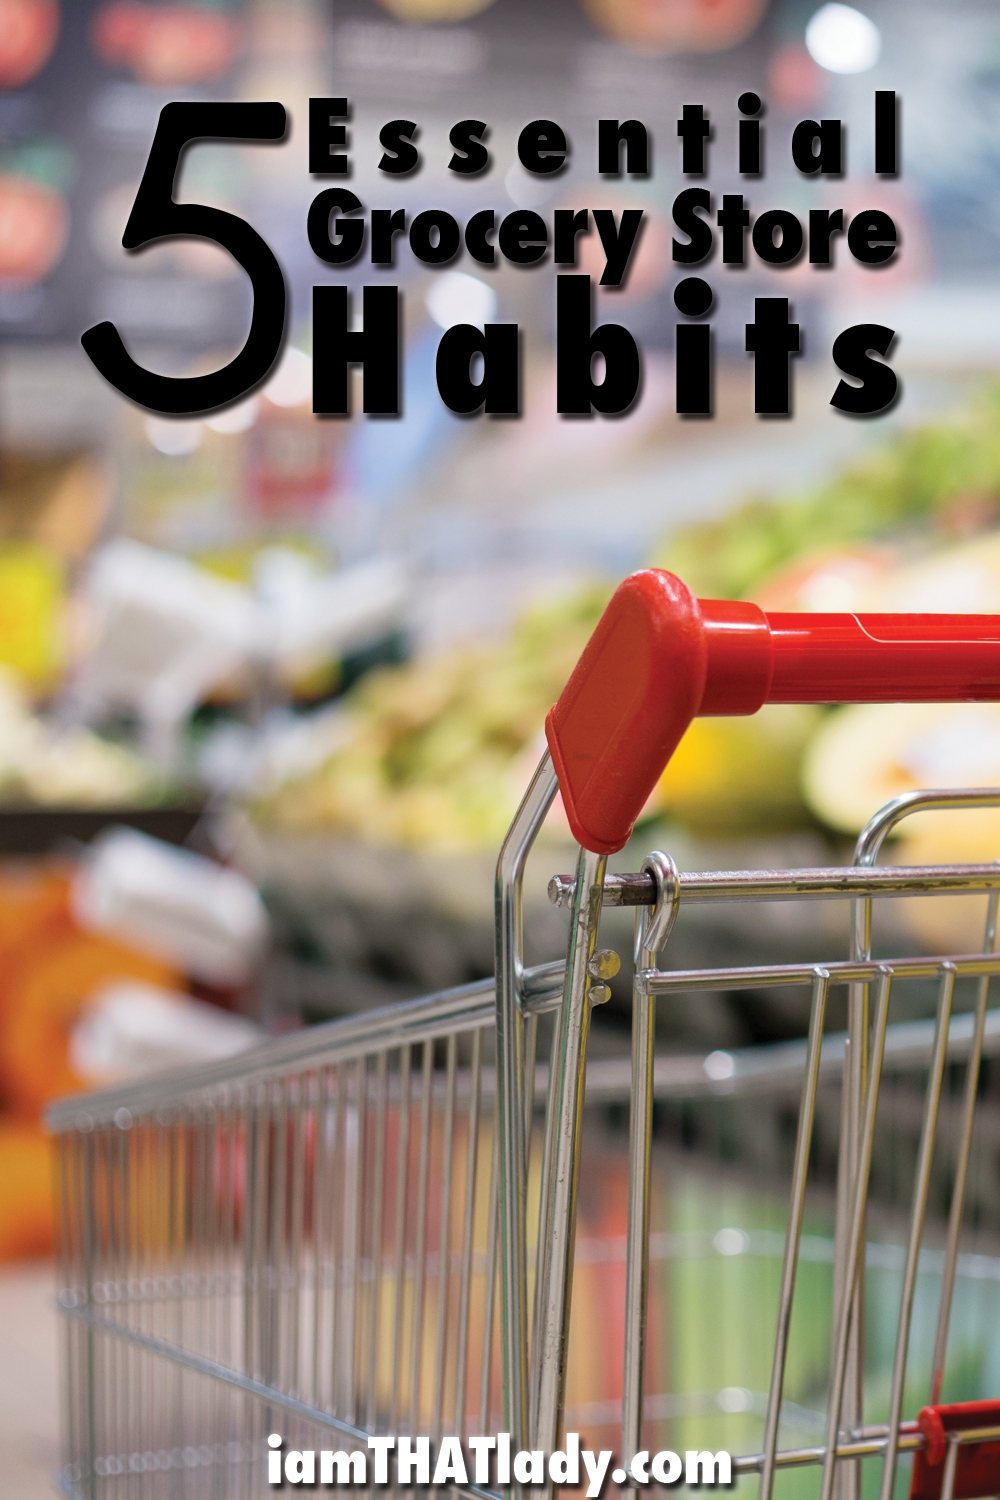 You are spending too much money in the grocery store if you don't have these 5 habits!